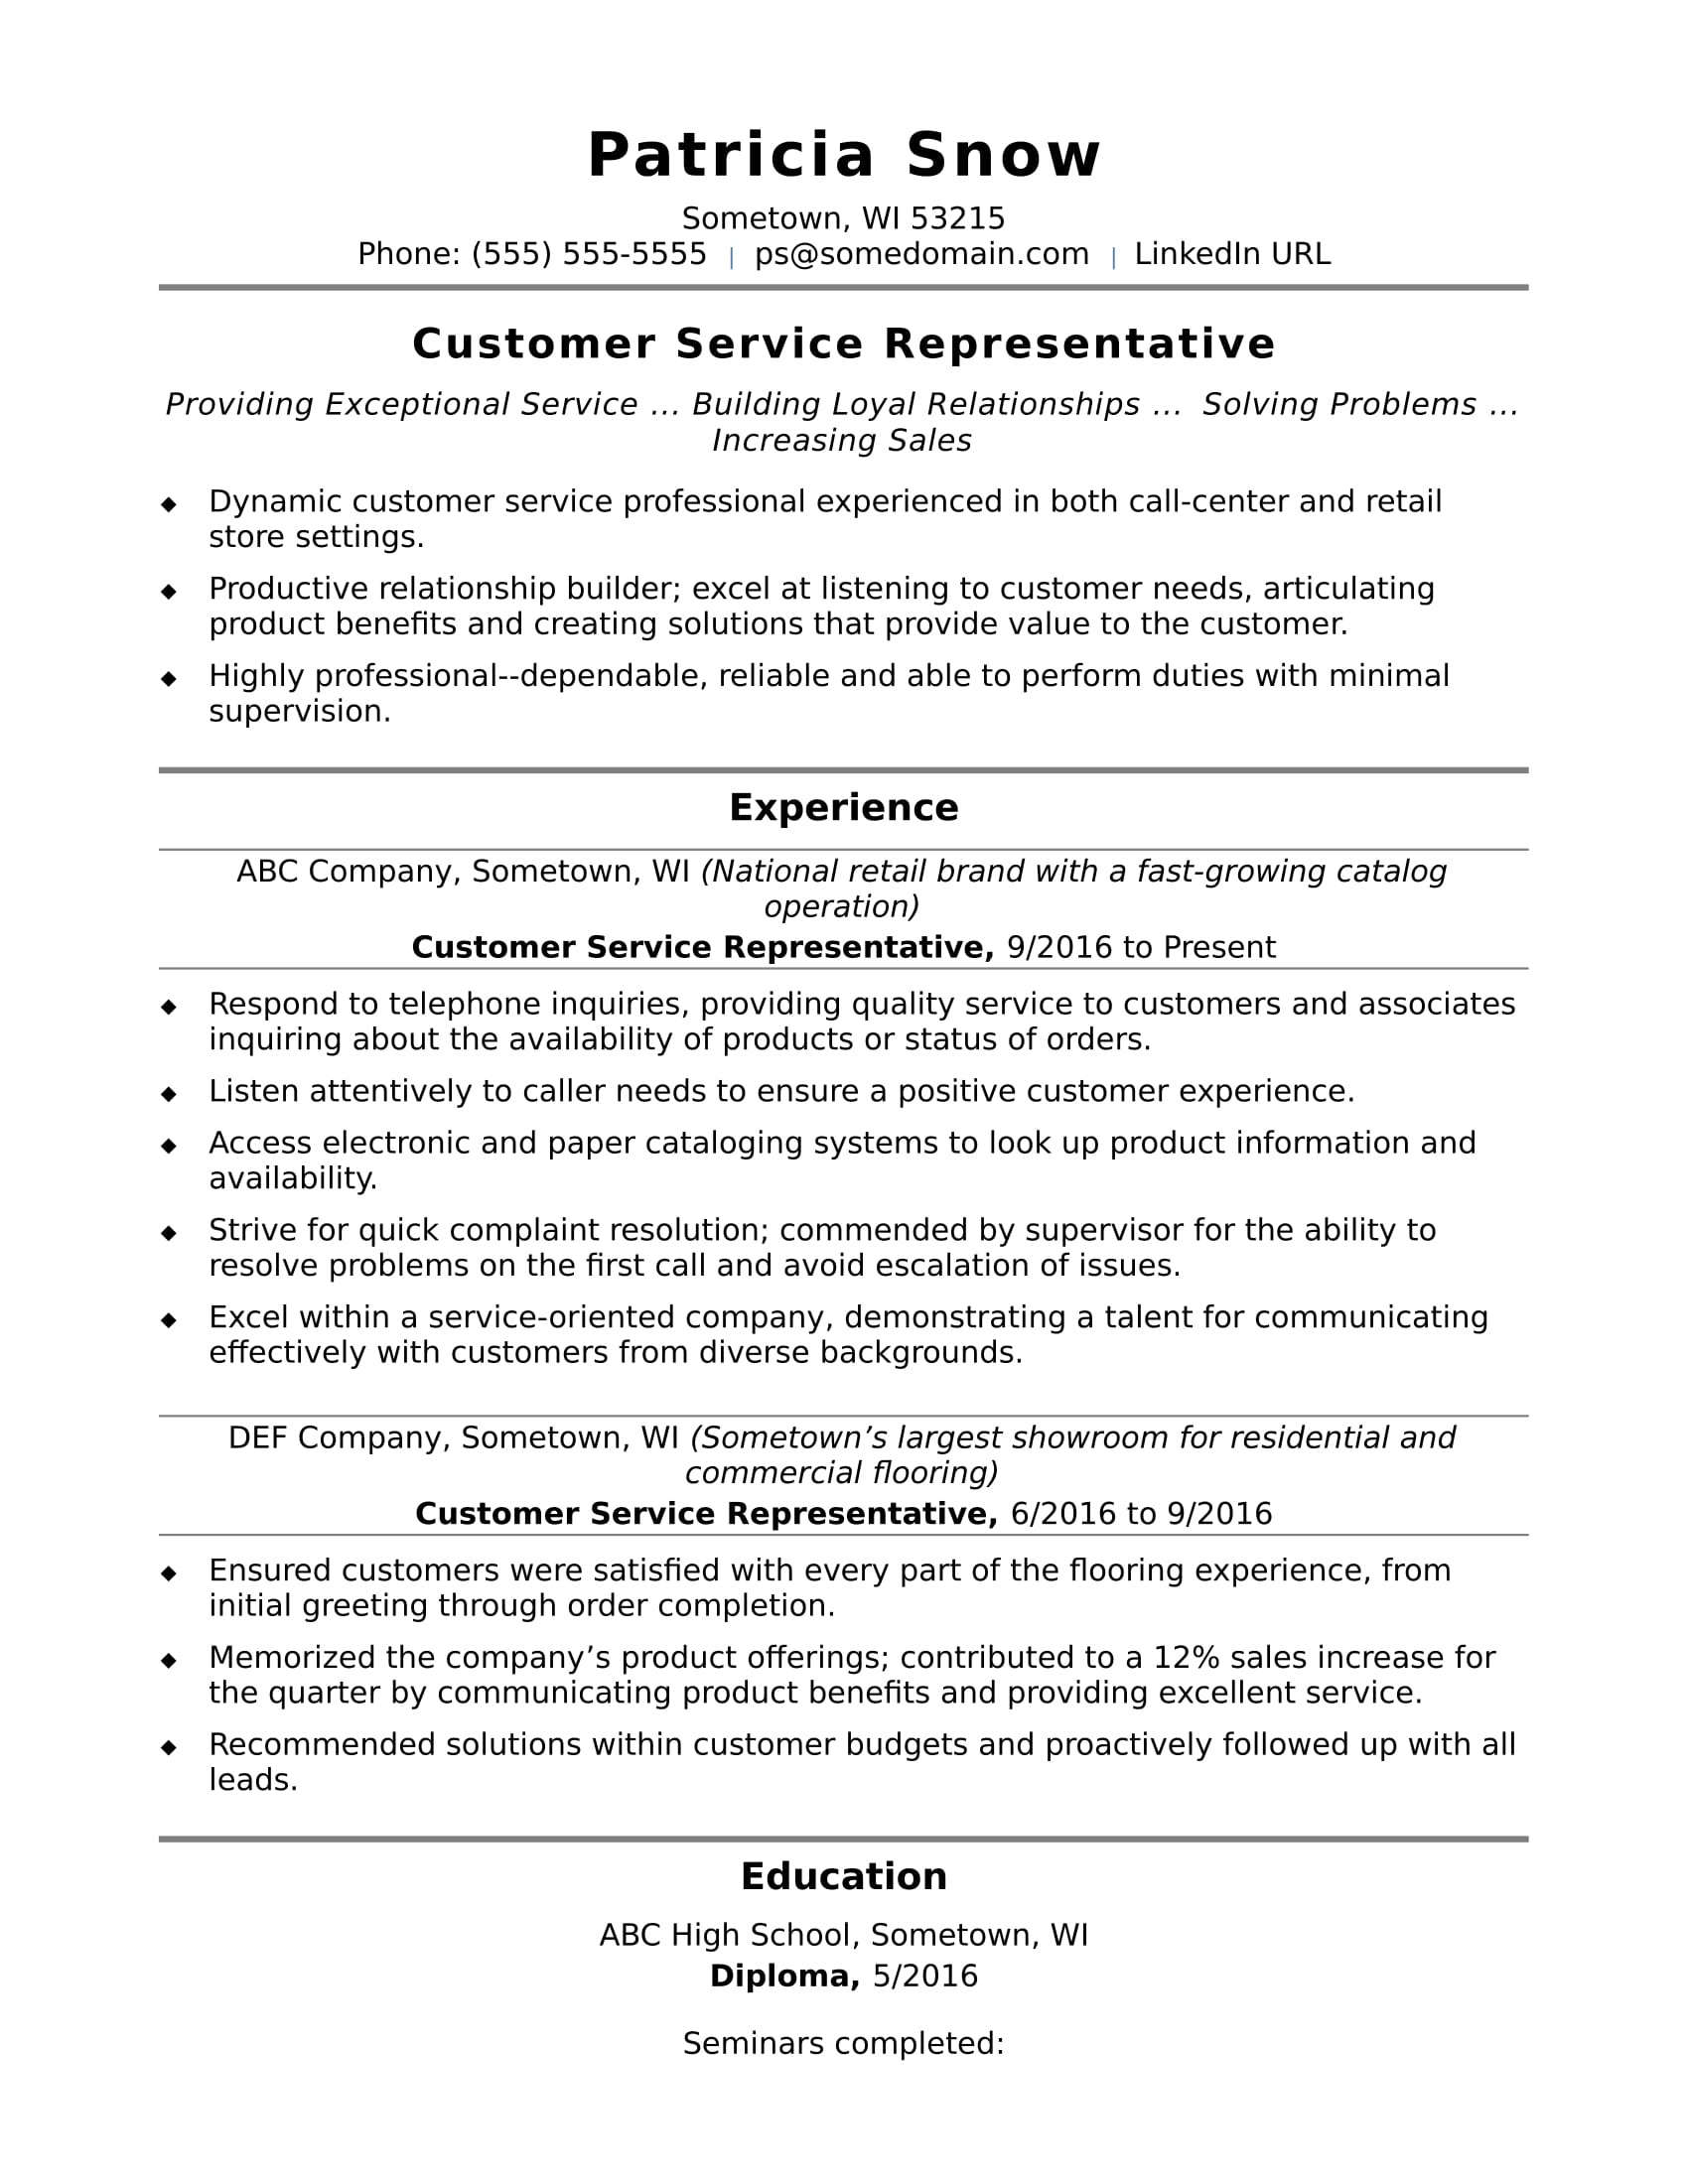 customer service representative resume sample - Sample Resume For Customer Service